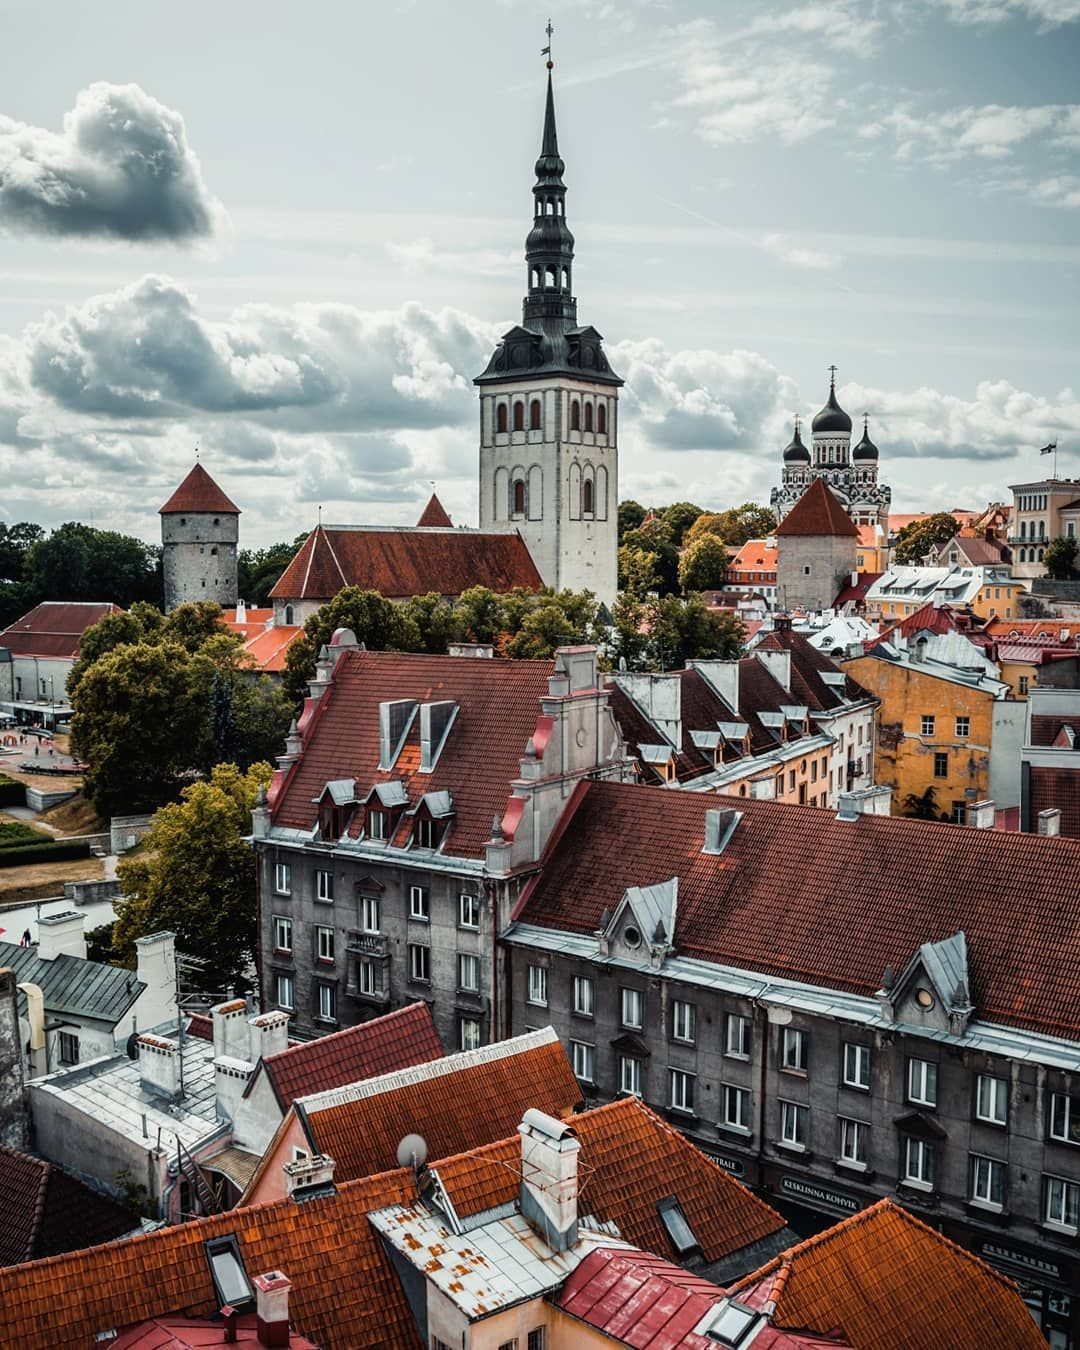 Tallinn A Perfect City For My Taste Not Too Big Not Too Small And With A Wonderful Old Town August 2019 Tallinn Estonia Travel City Aesthetic